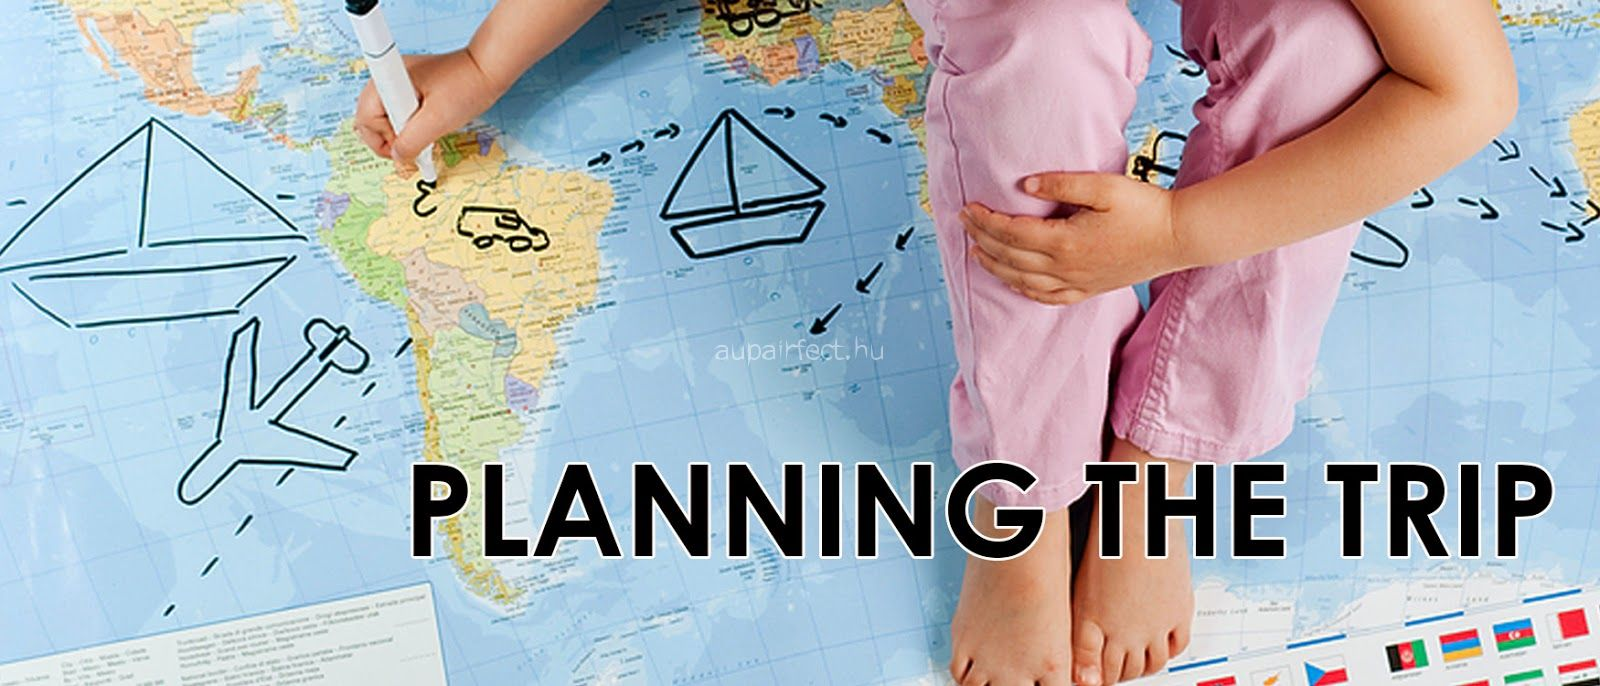 Think ahead - Planning your trip!